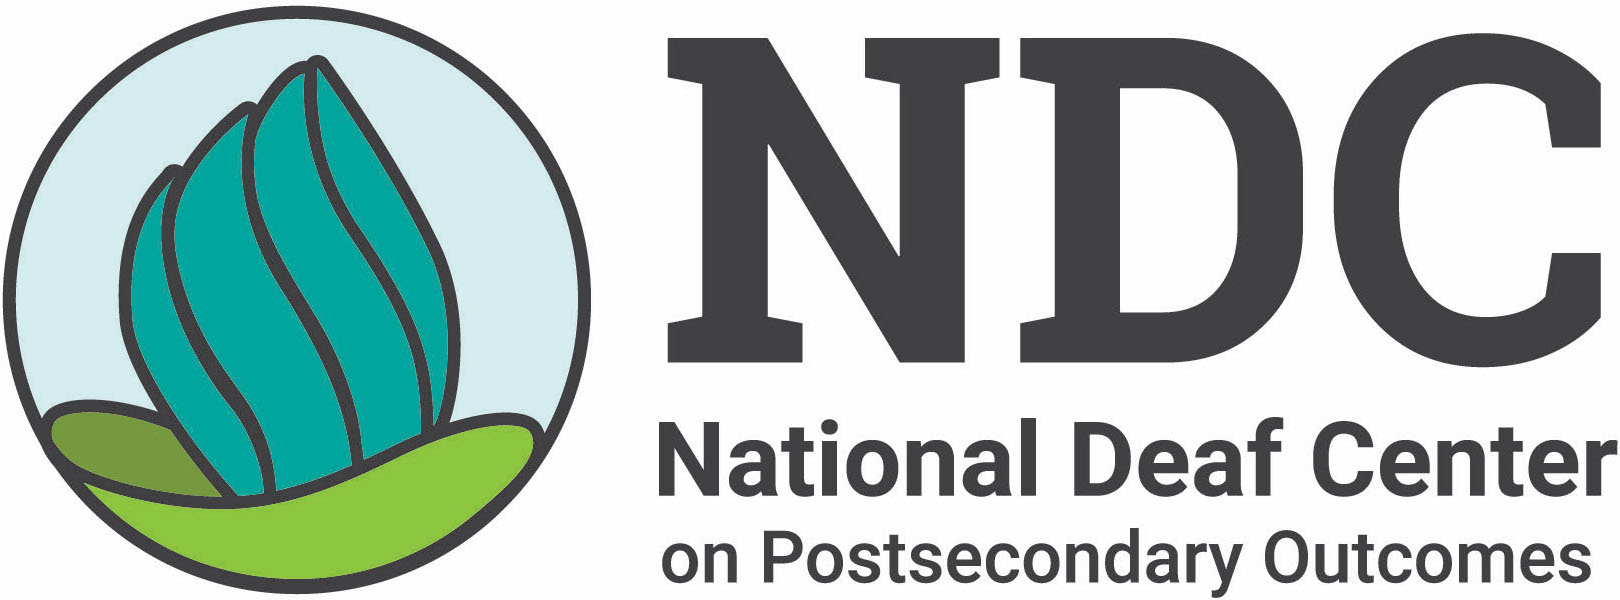 National Deaf Center on Postsecondary Outcomes